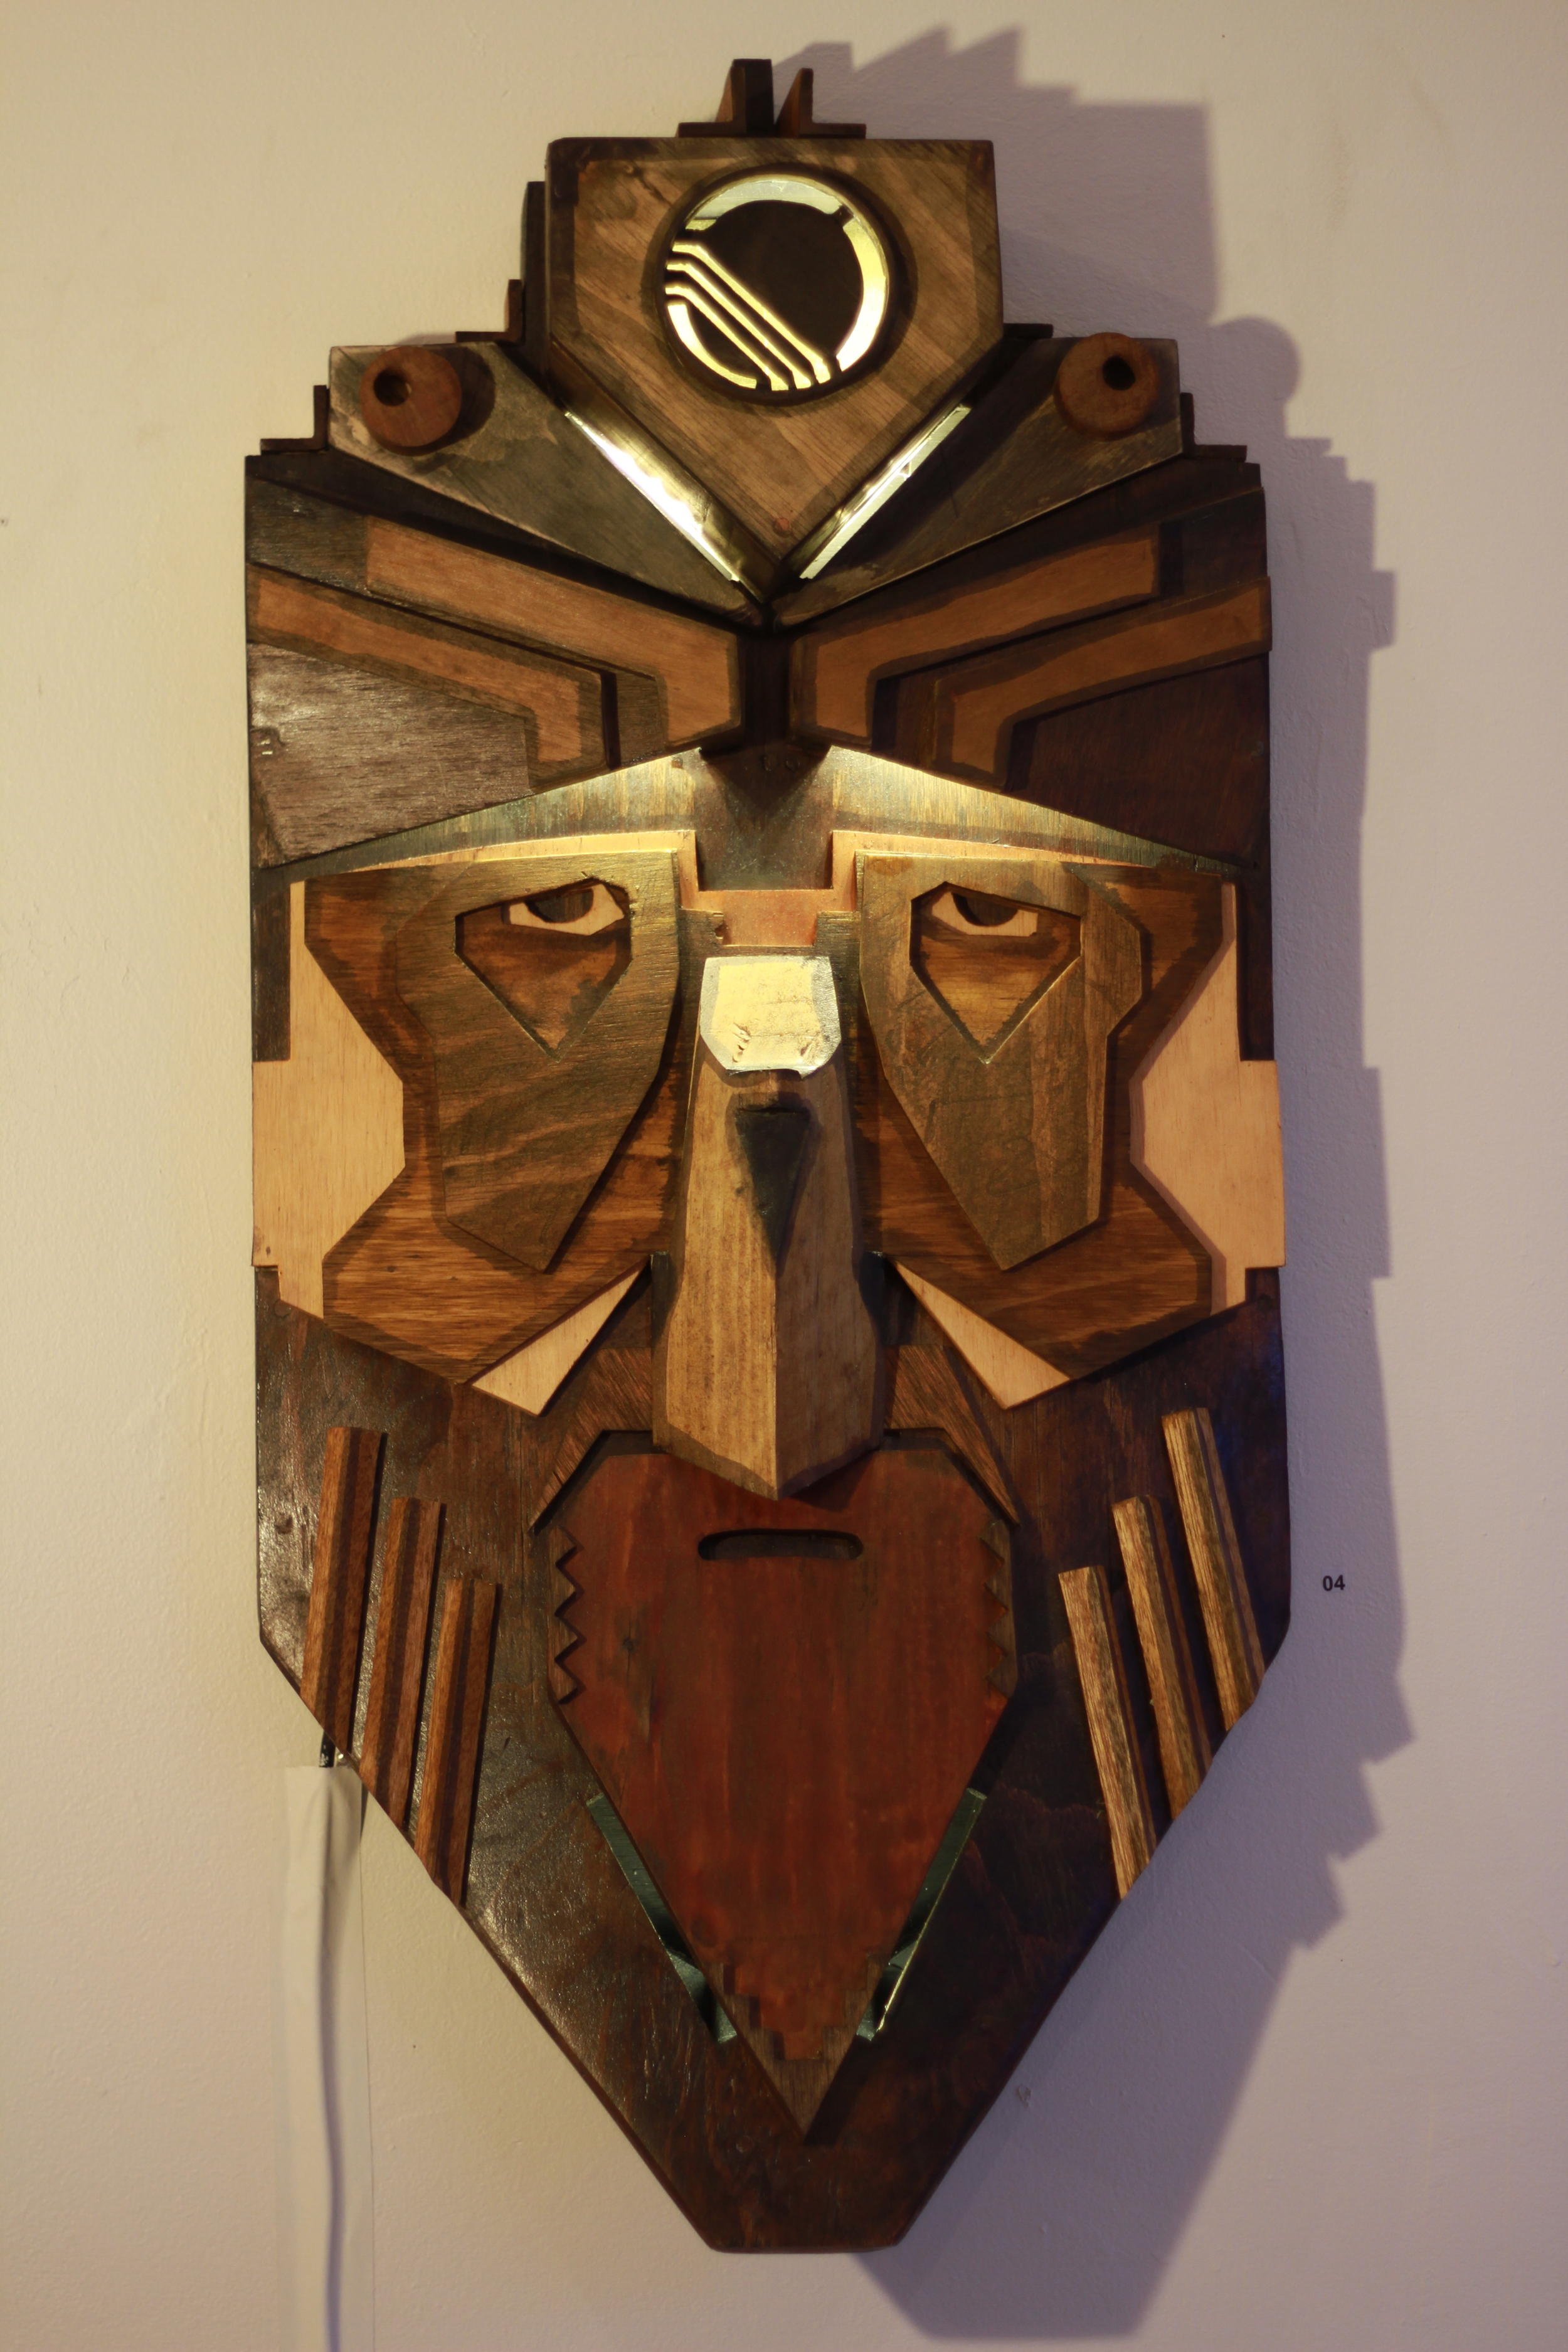 2012, Timber, brass, LED, oil stain, 85x48x24cm, photograph by Michael Herman.